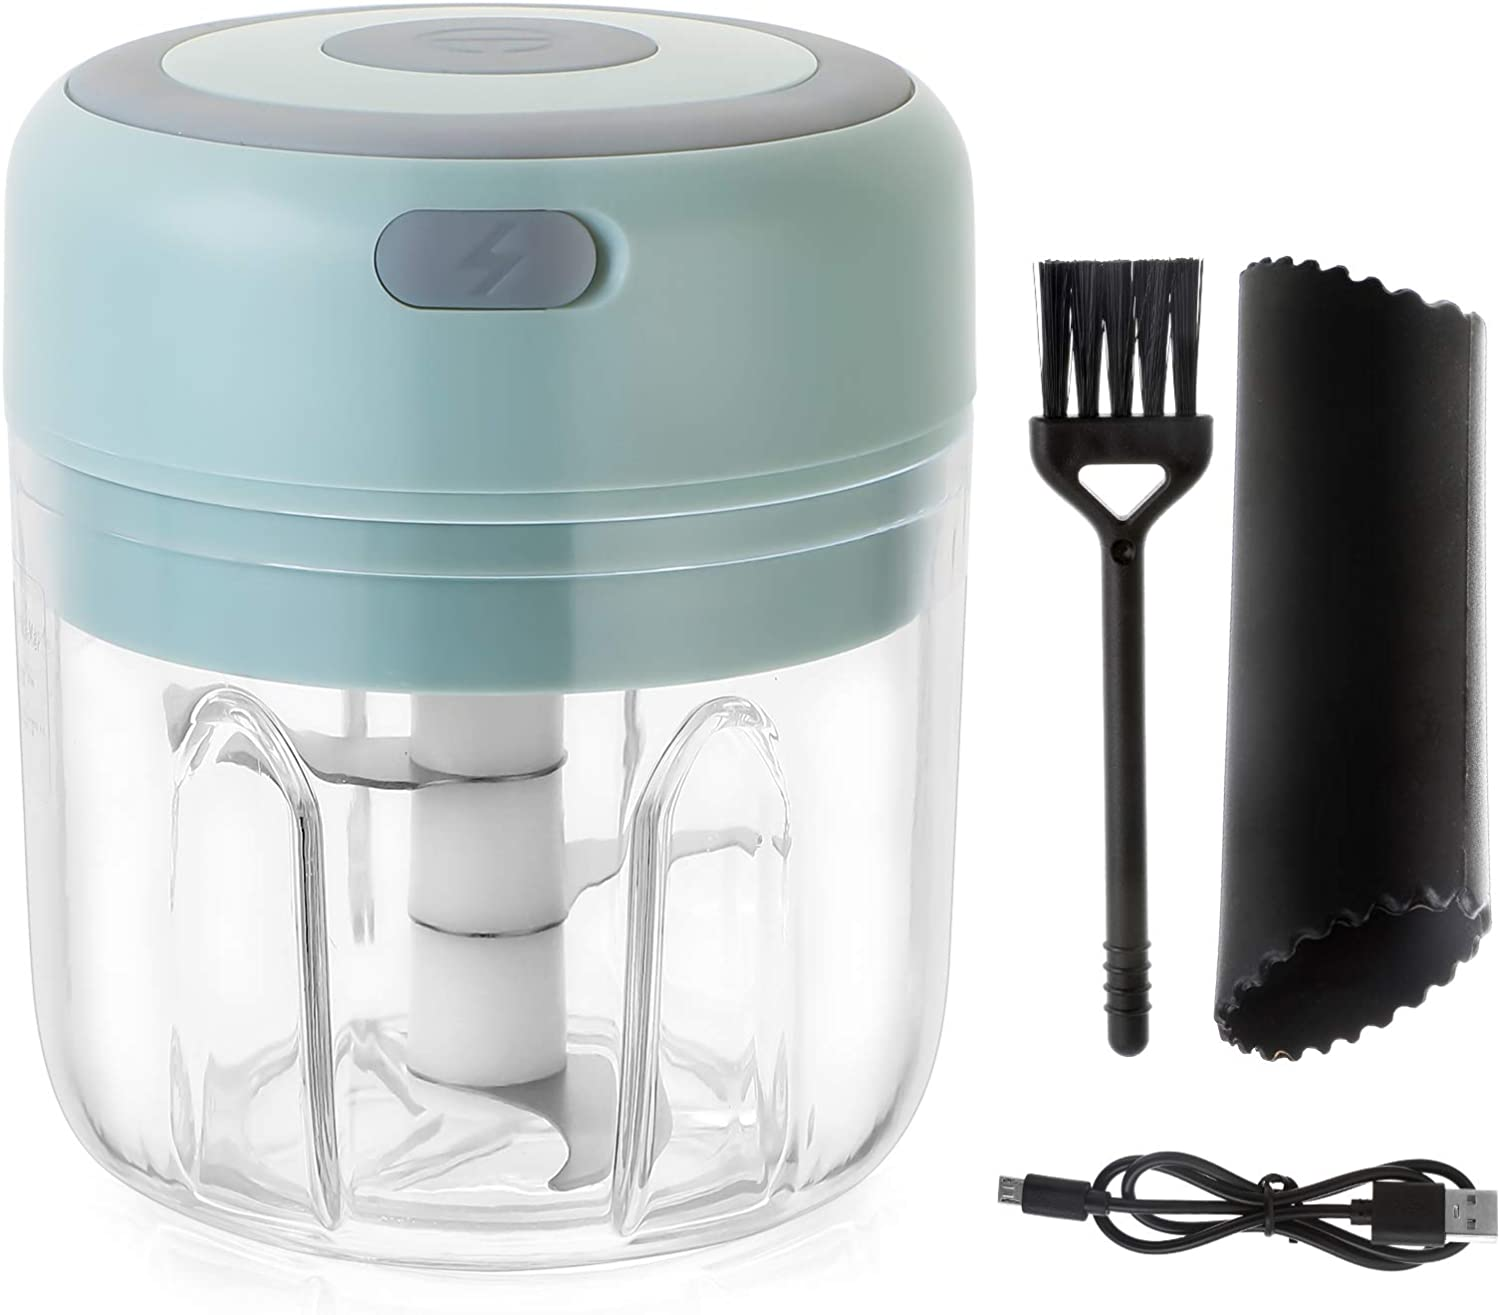 Electric Mini Garlic Masher with Garlic Peeler and Cleaning Brush 250ml Small Wireless Kitchen Food Masher Green Portable Kitchen Food Processor